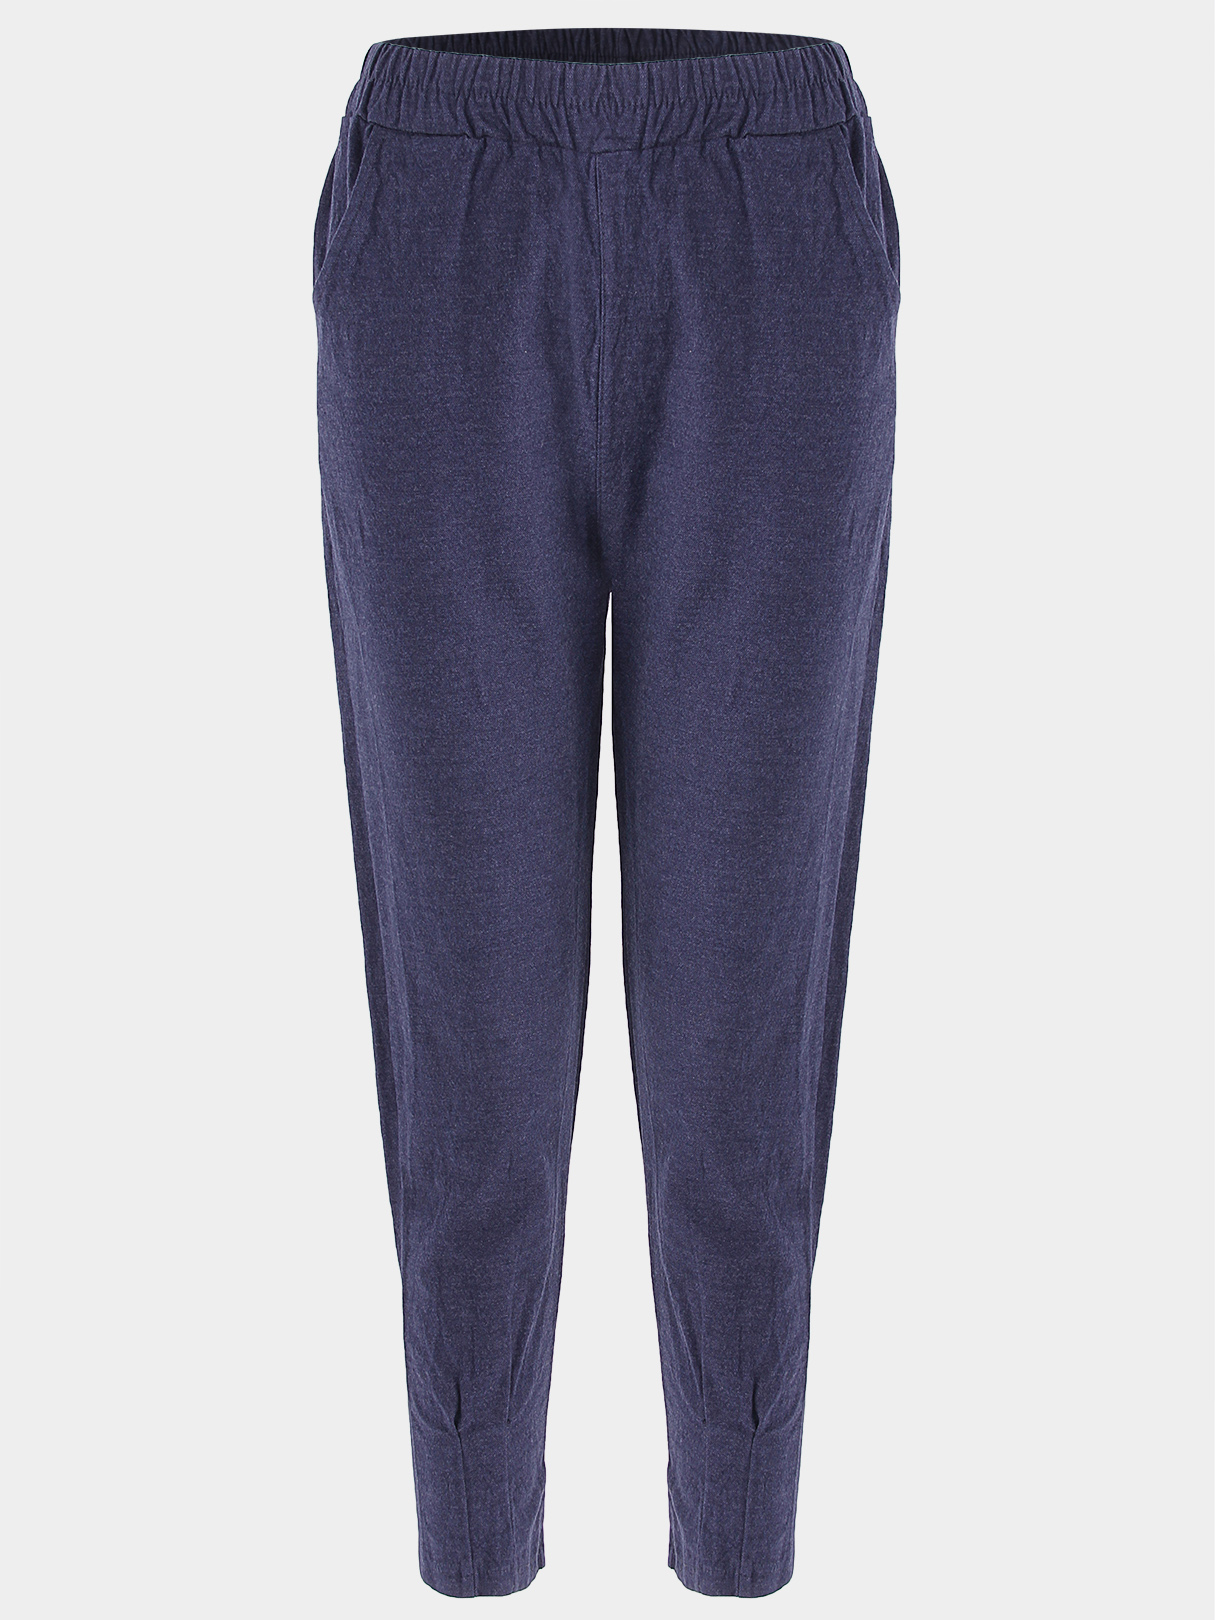 Navy High-rise Two Side Pockets Drainpipe Jeans